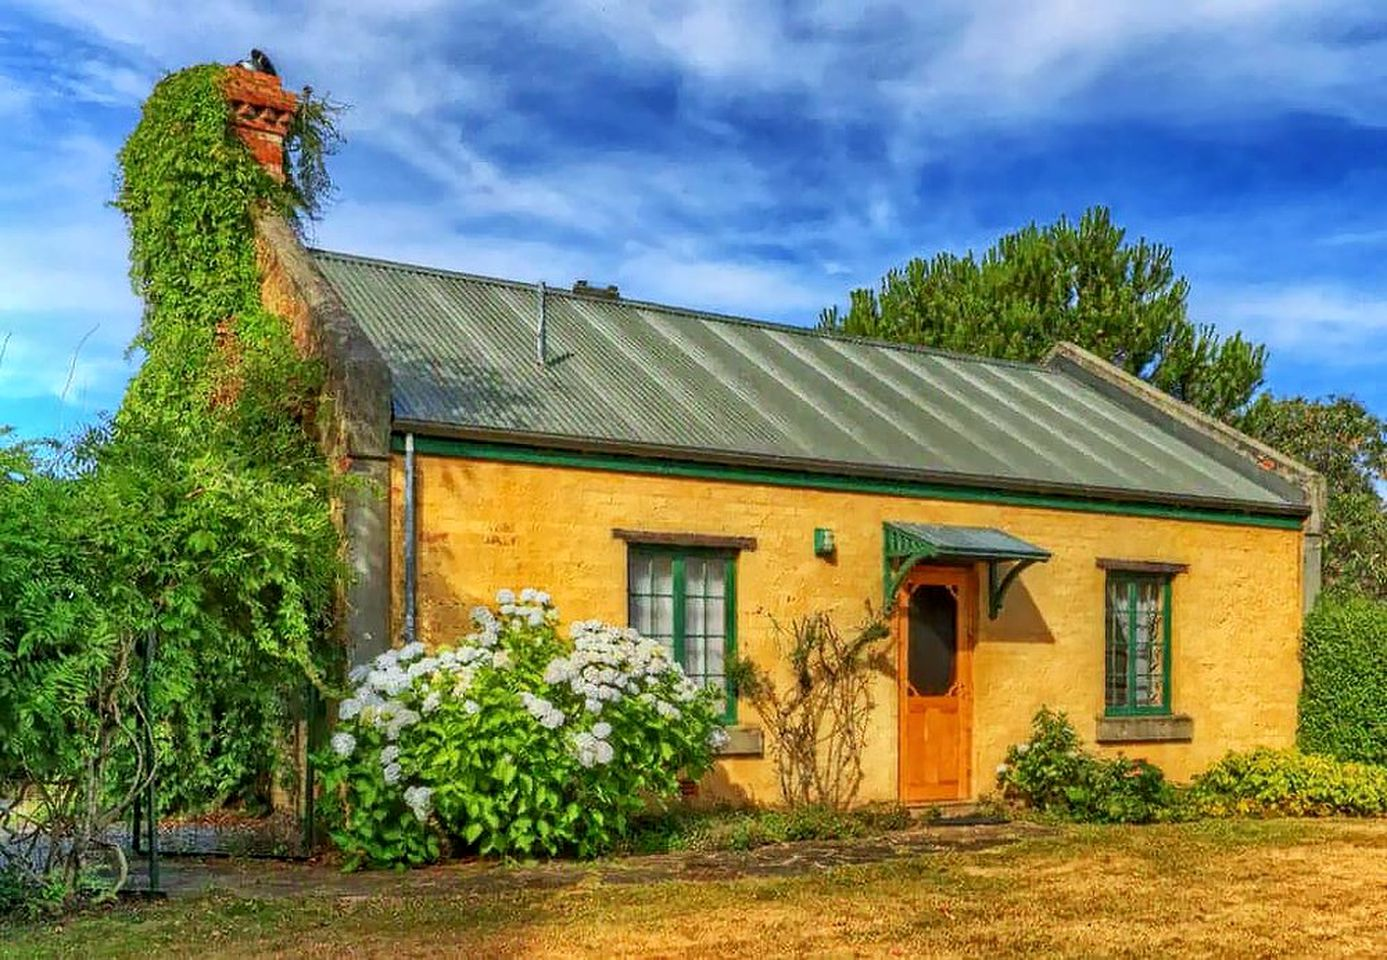 This Mole Creek Accommodation is secluded and set on a peaceful site in Tasmania. Holiday homes don't come more beautifully decorated